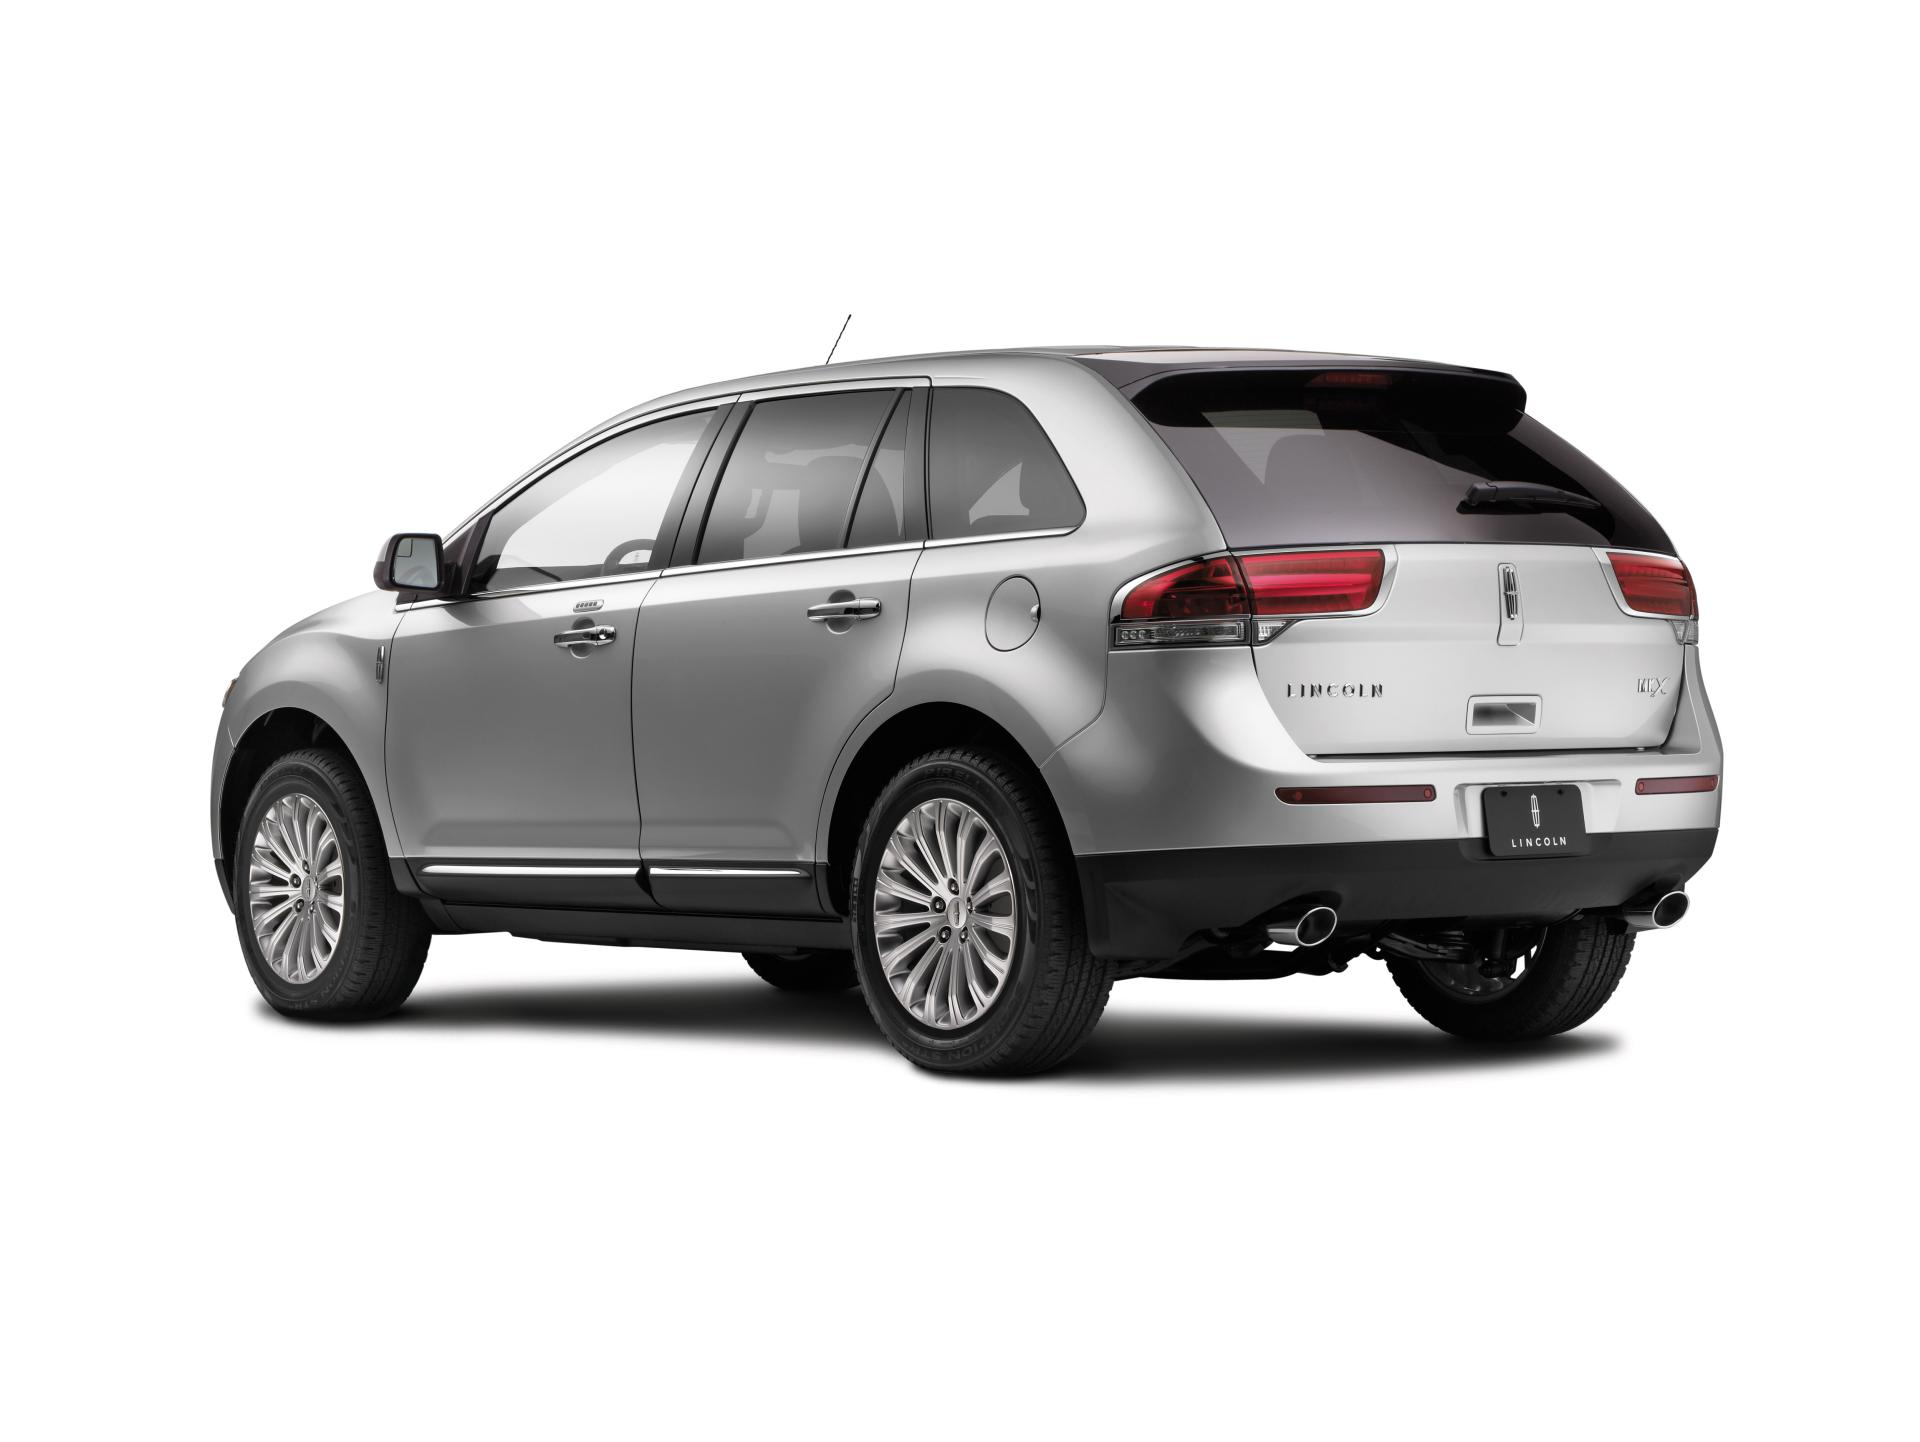 carfinder rouge auctions of lincoln salvage lot sale la auto cert title mkx on in right baton view en maroon online copart